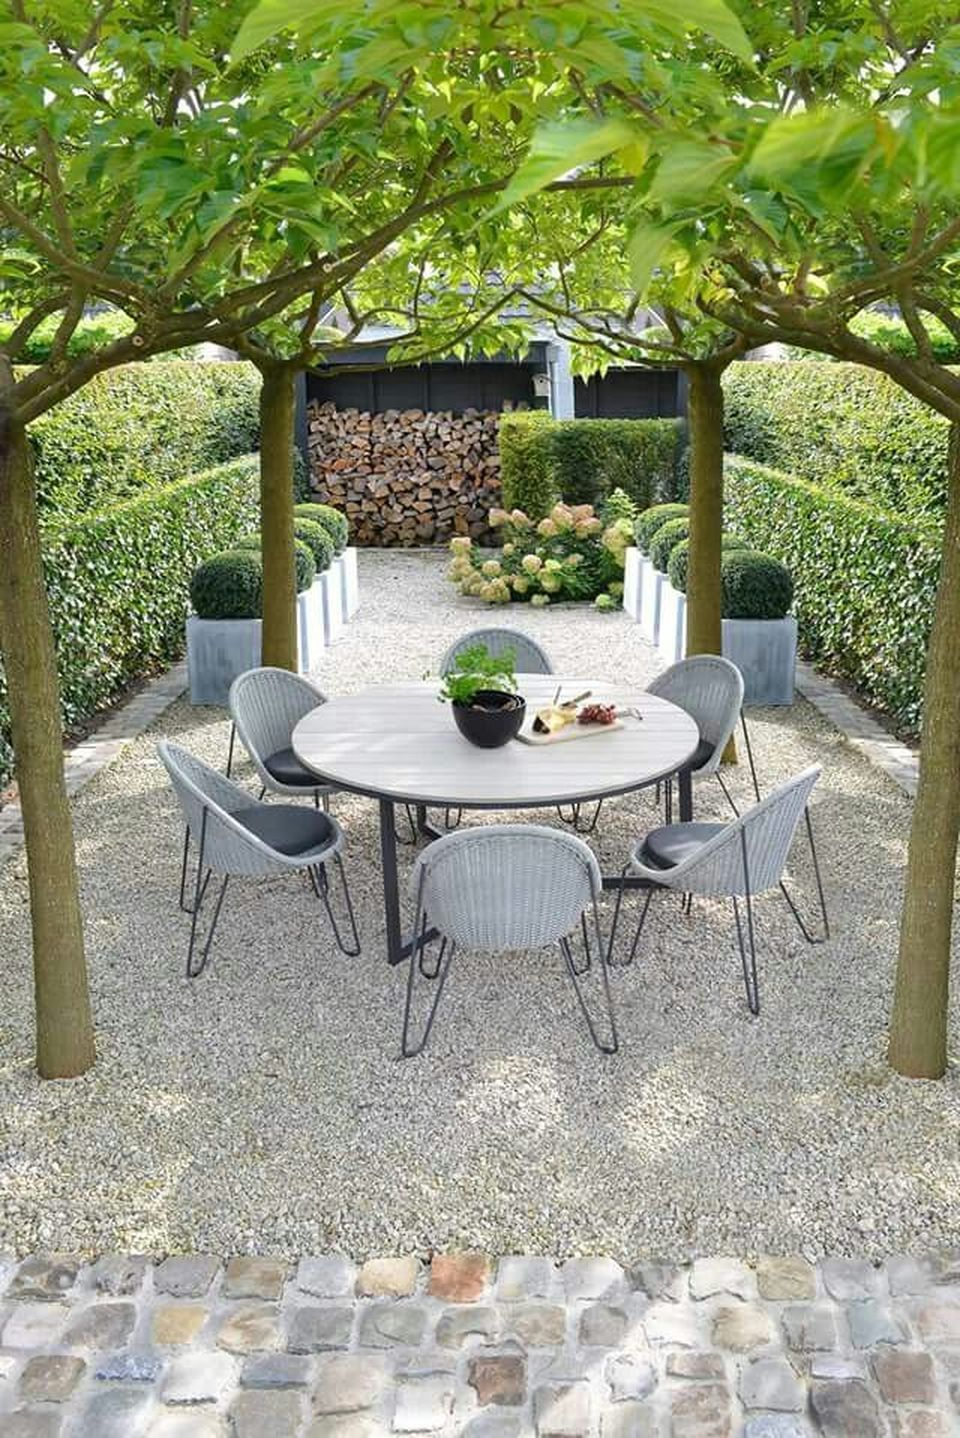 Small Courtyard Garden With Seating Area Design And Layout 400 x 300